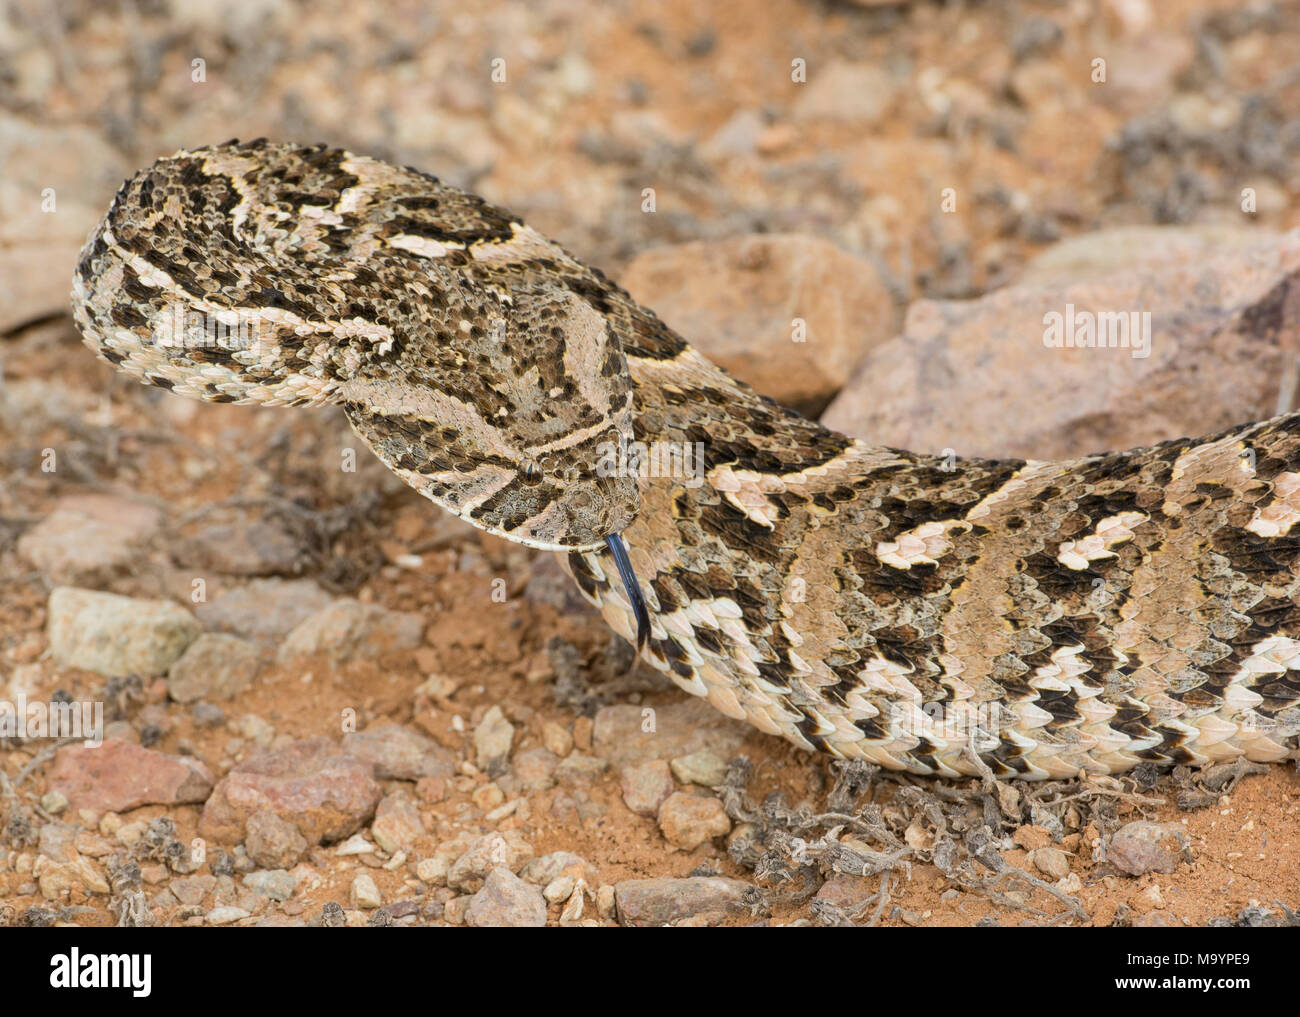 Puff Adder (Bitis arietans) in Morocco North Africa. - Stock Image